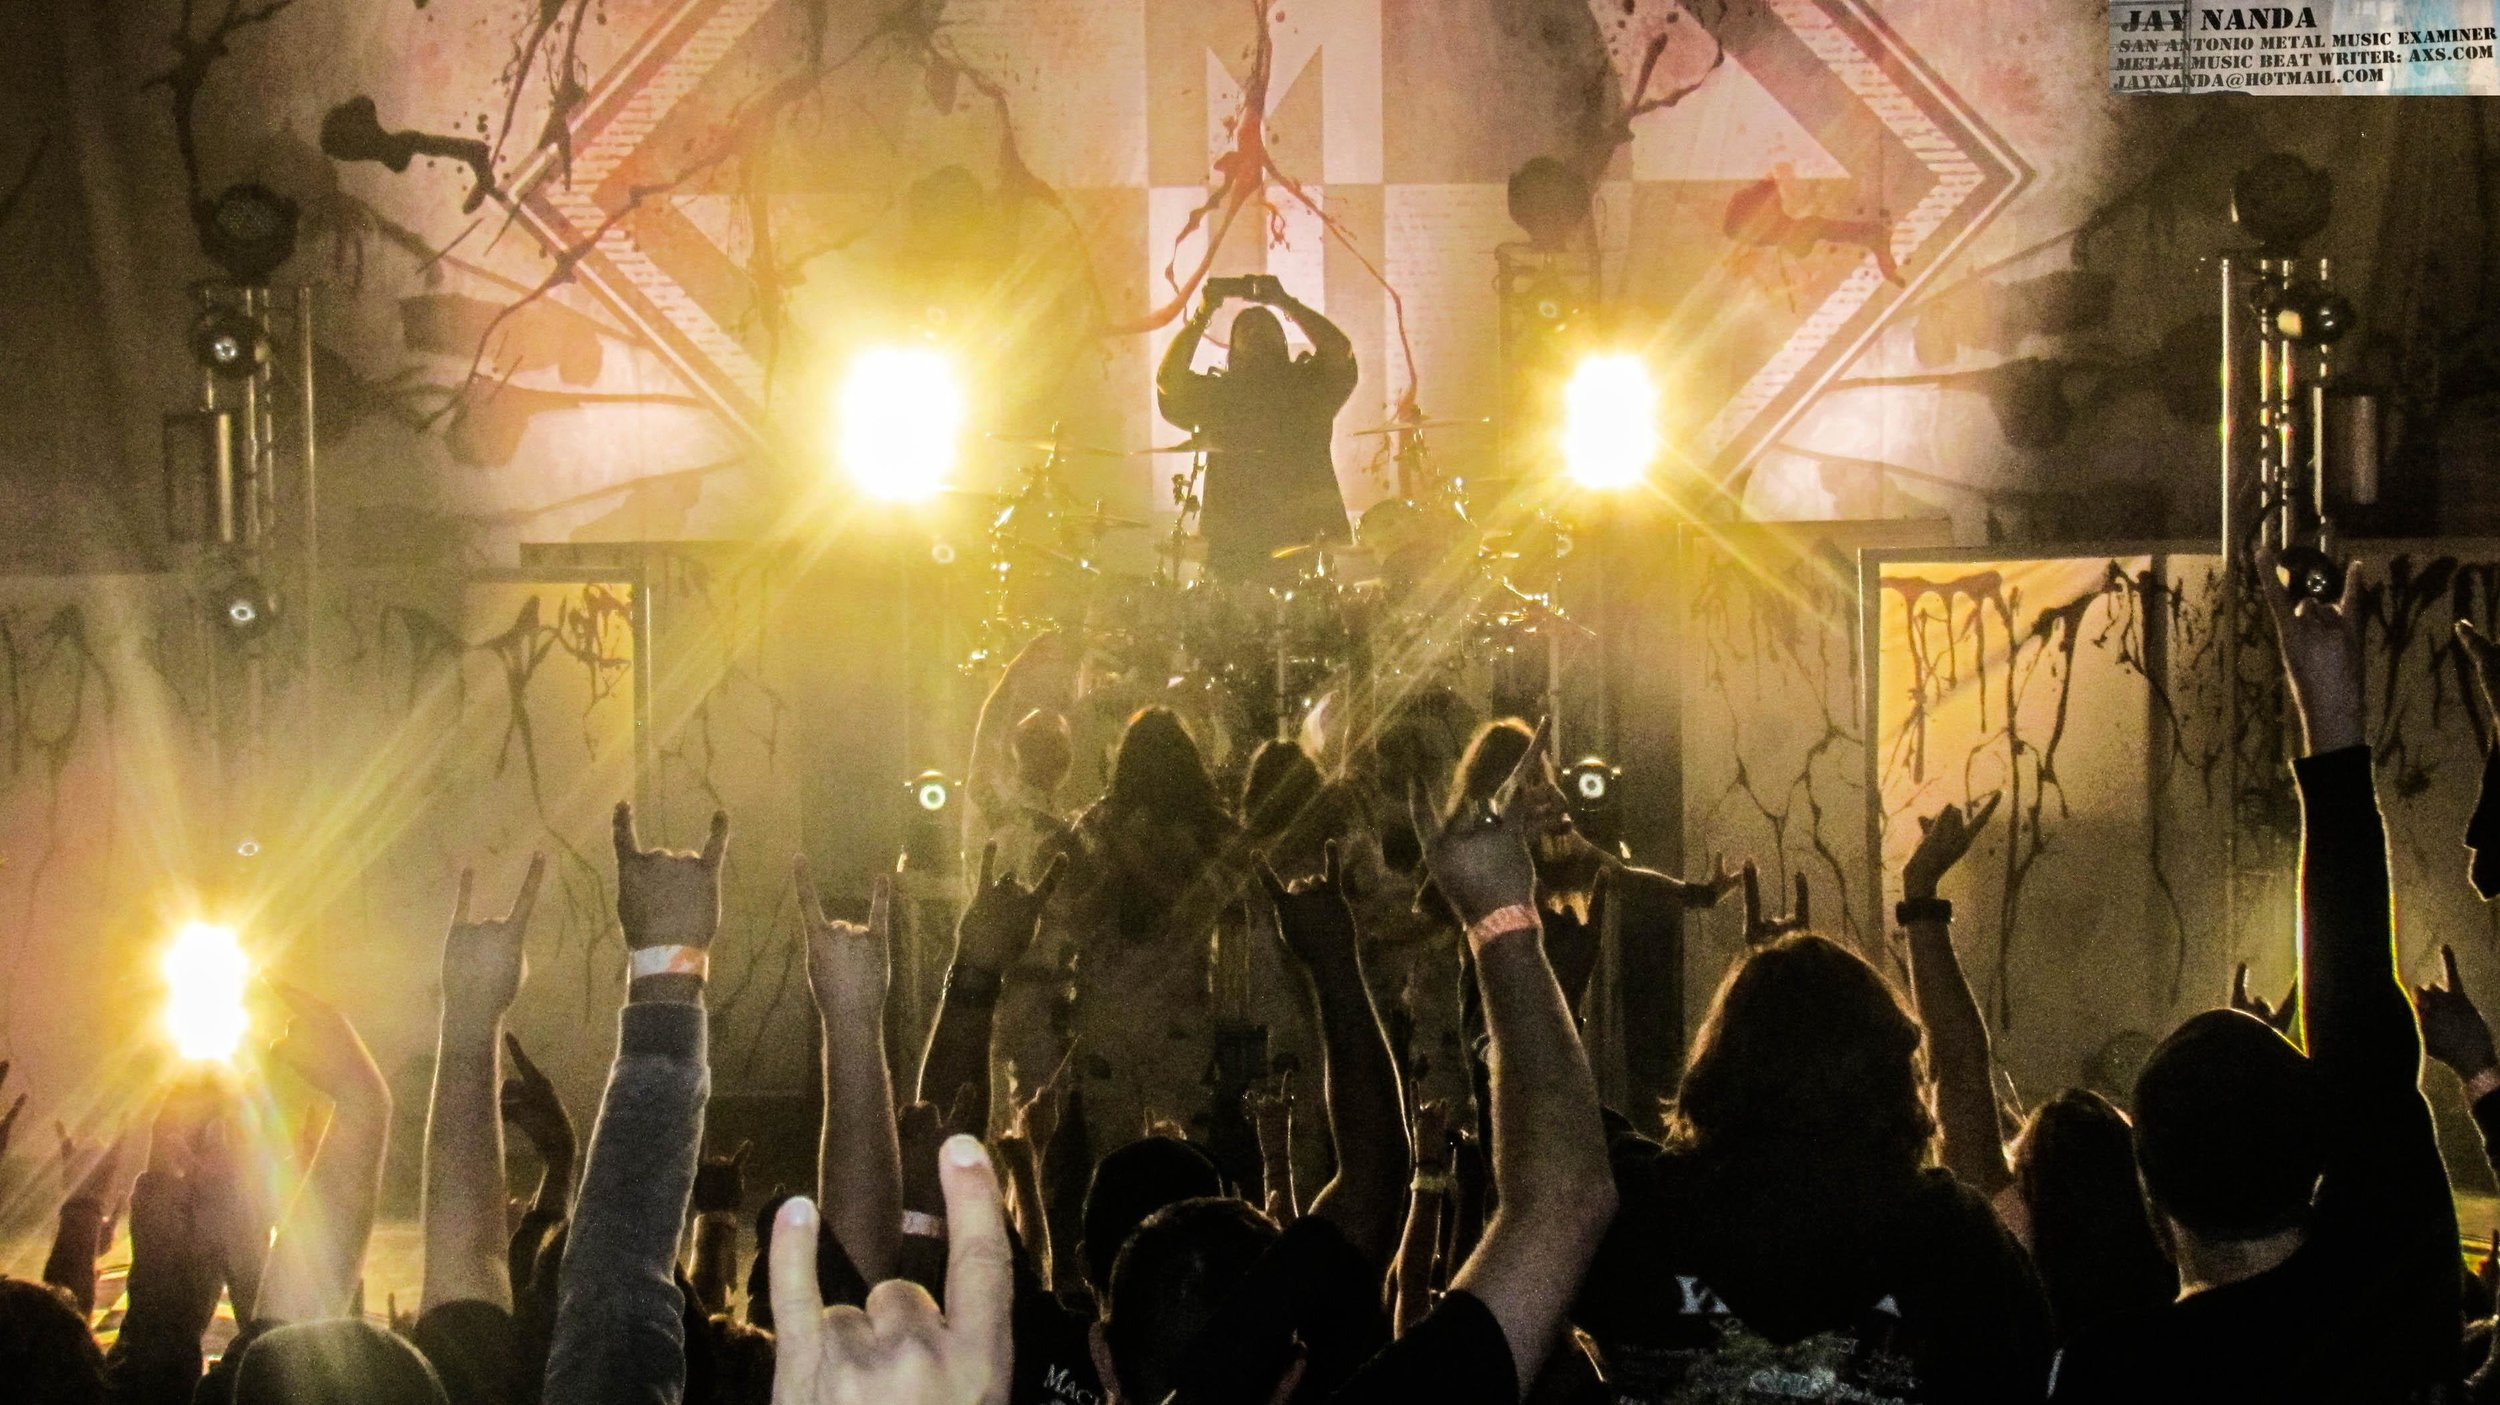 With the fans as a backdrop, Machine Head ends the night posing for a group pic.